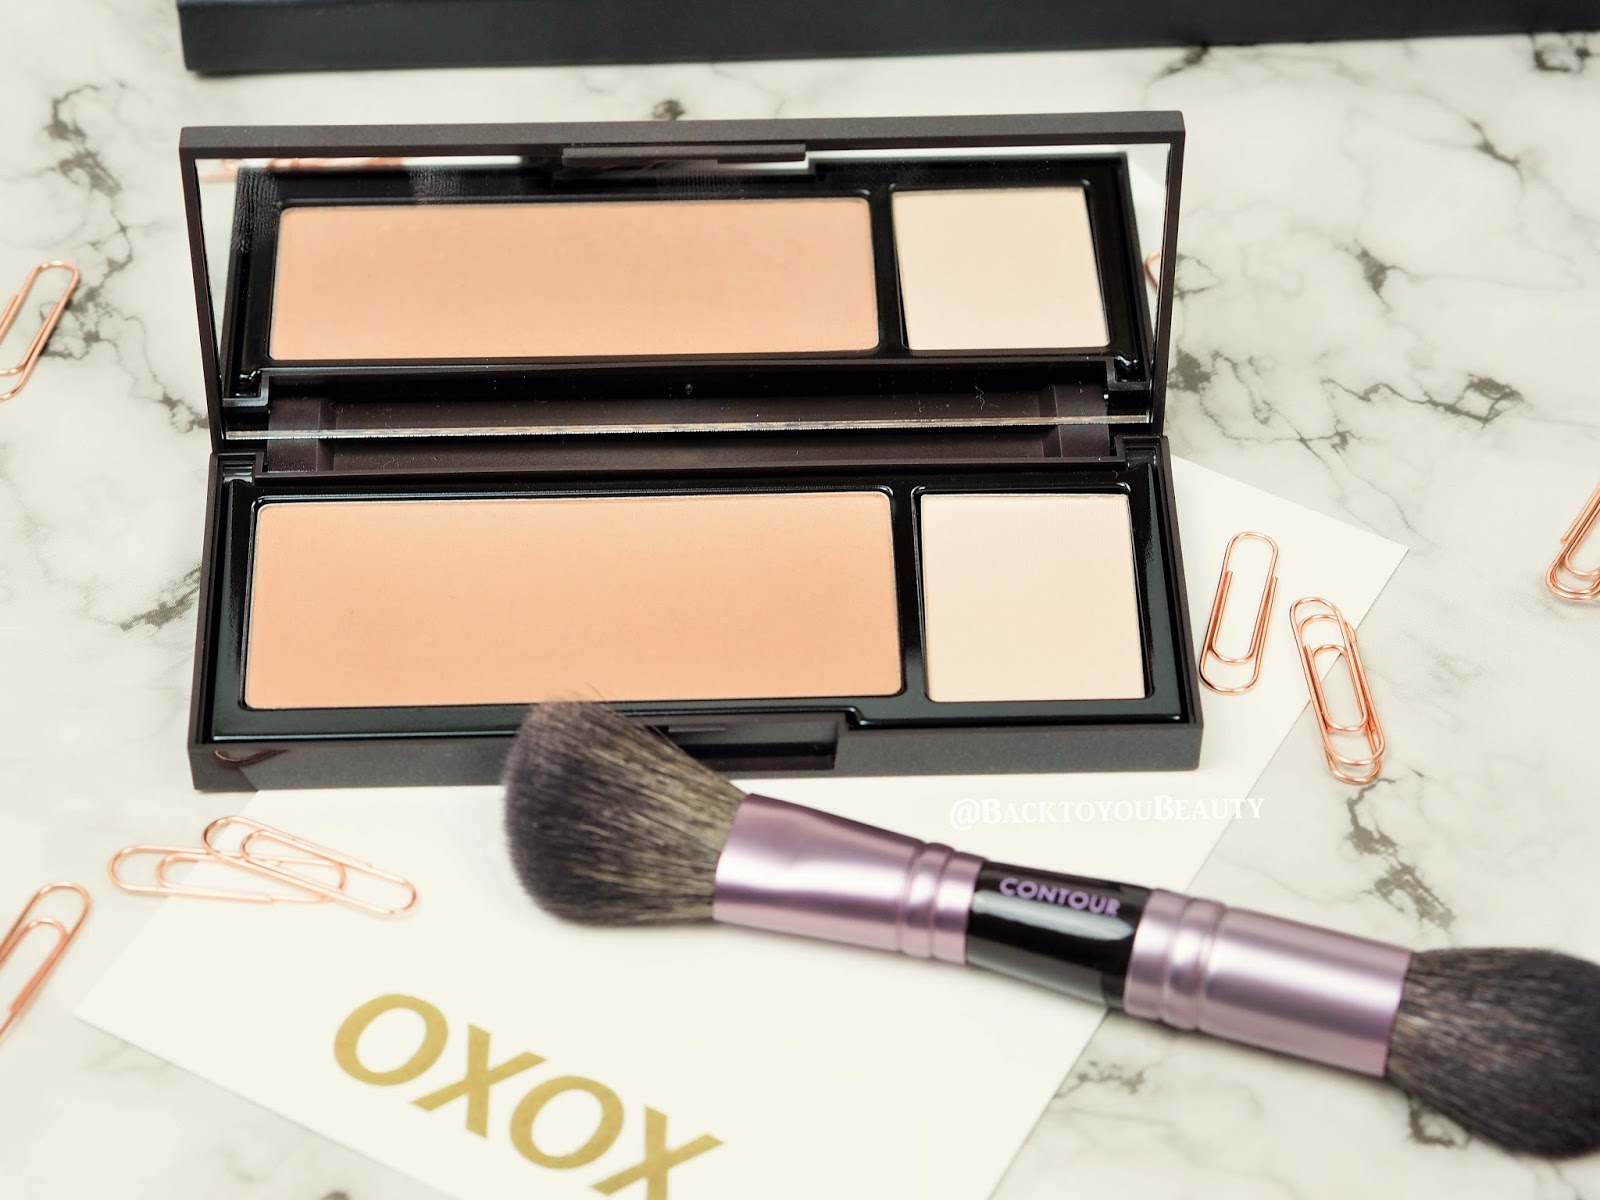 Studio 10 Bronzer & Travel Brush